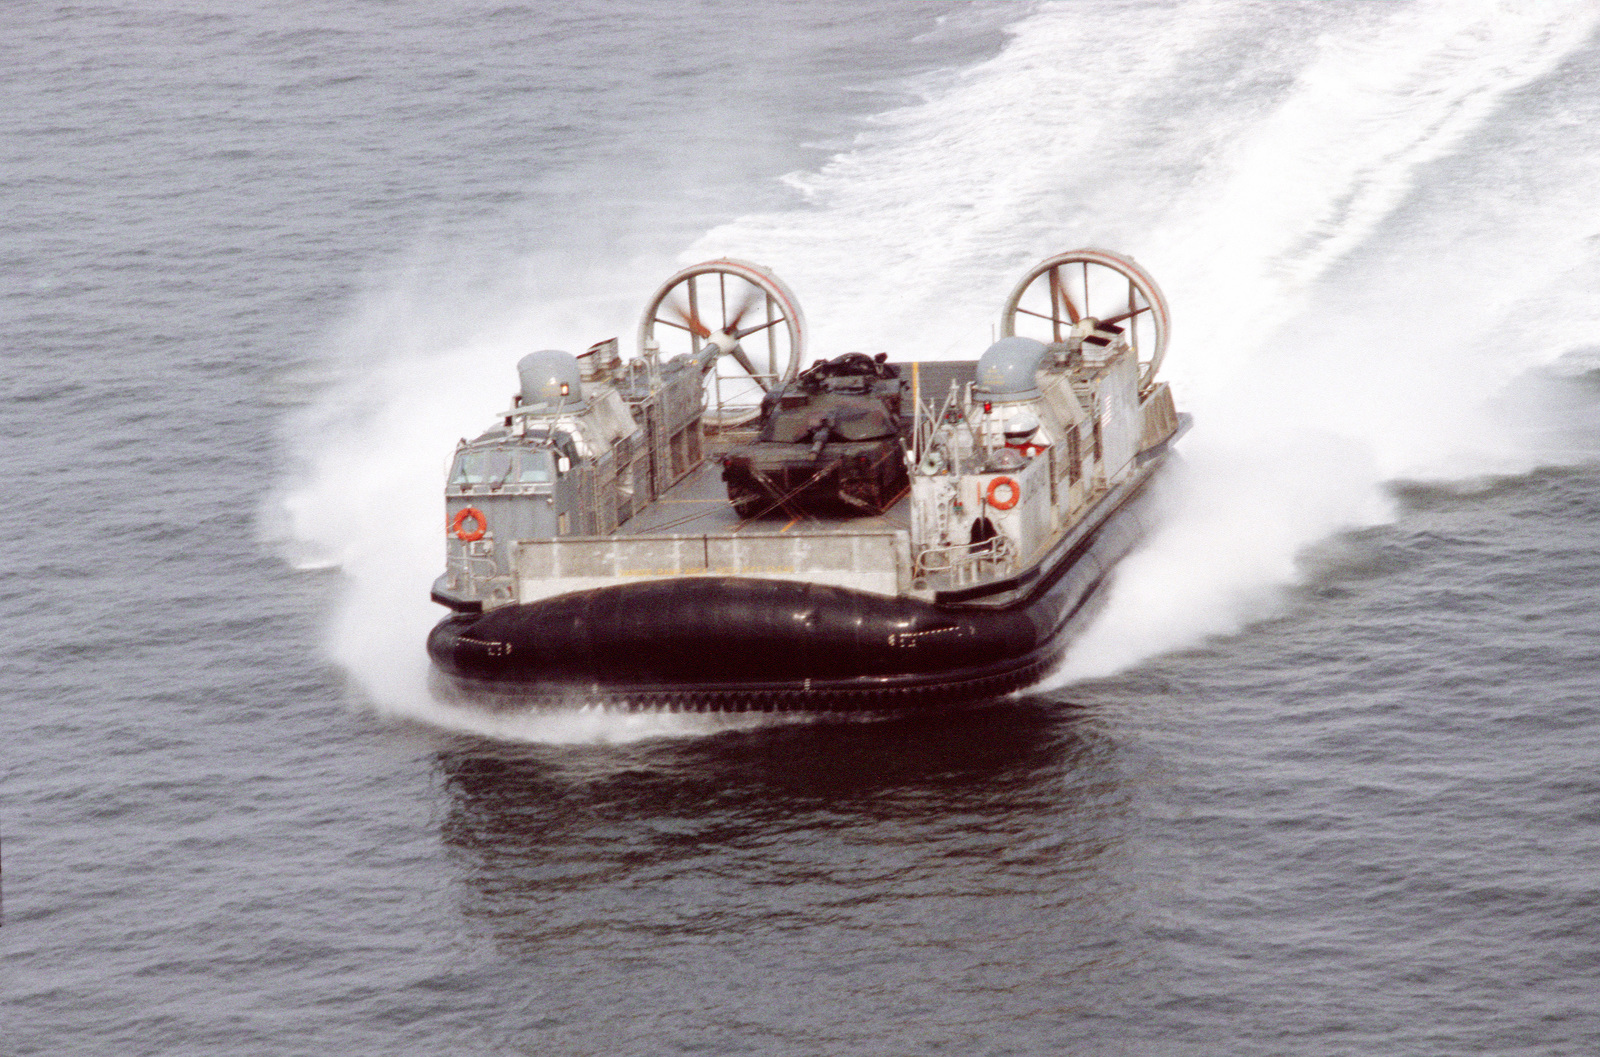 A bow view of air cushion landing craft LCAC 12 underway near Naval Amphibious Base, Little Creek, Virginia.  The landing craft is carrying a Marine M1A1 main battle tank